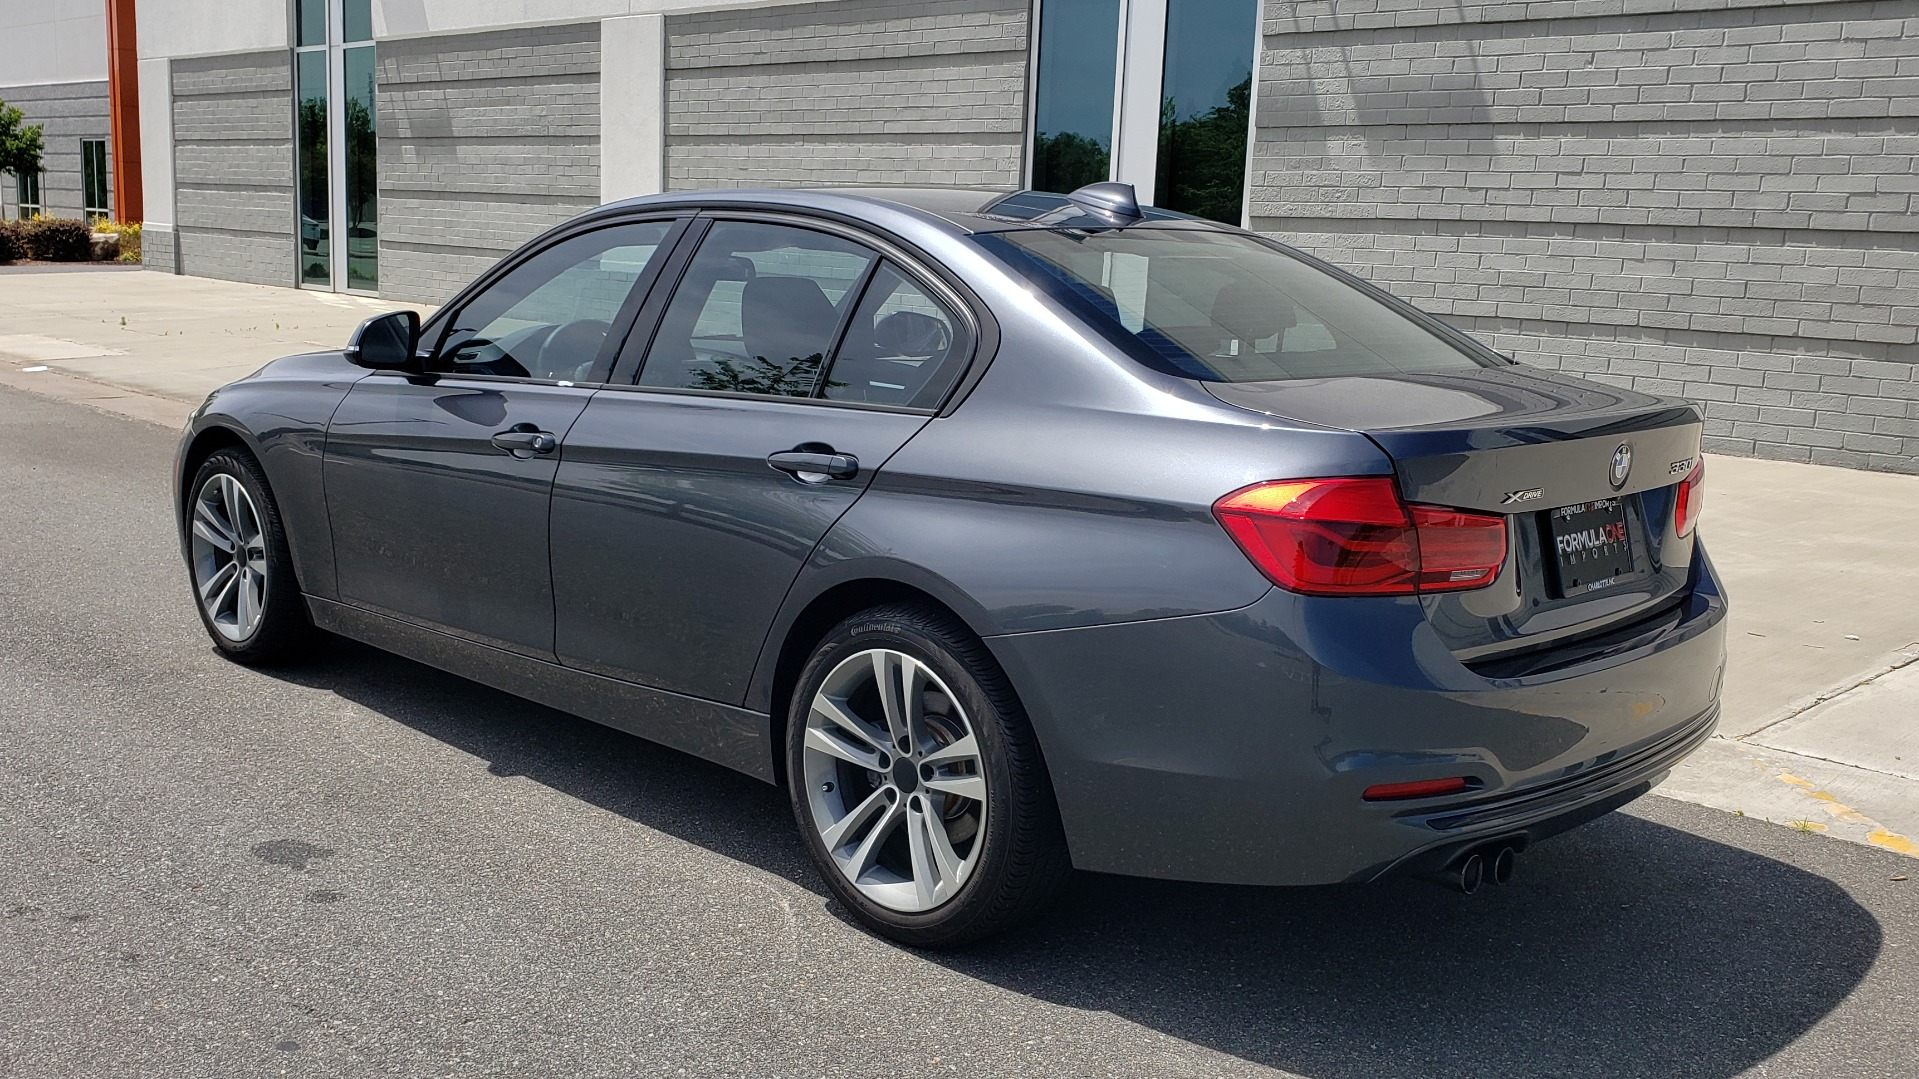 Used 2018 BMW 3 SERIES 330I XDRIVE / CONV PKG / SUNROOF / SPORT STS / HTD STS / REARVIEW for sale $28,495 at Formula Imports in Charlotte NC 28227 4